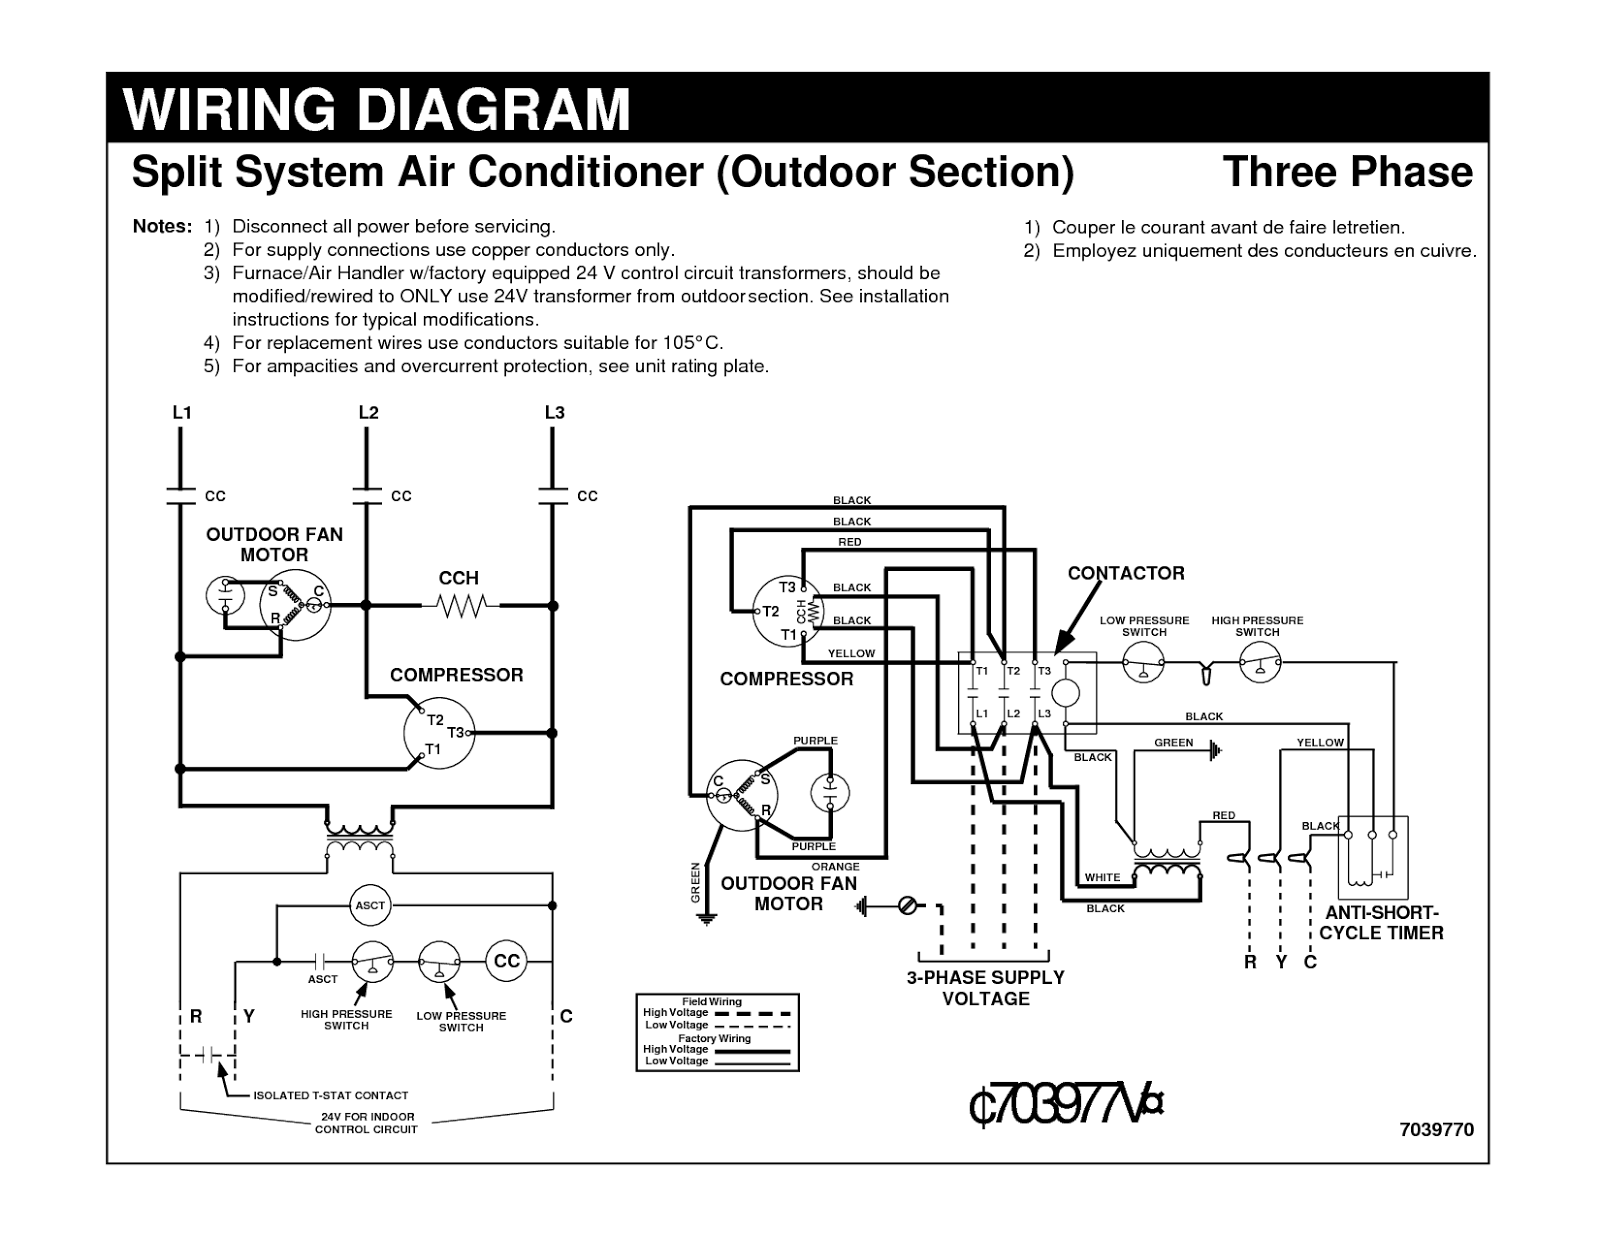 Hvac wiring schematic wiring diagrams schematics electrical wiring diagrams for air conditioning systems part one automotive wiring schematics basic hvac wiring diagrams cheapraybanclubmaster Gallery